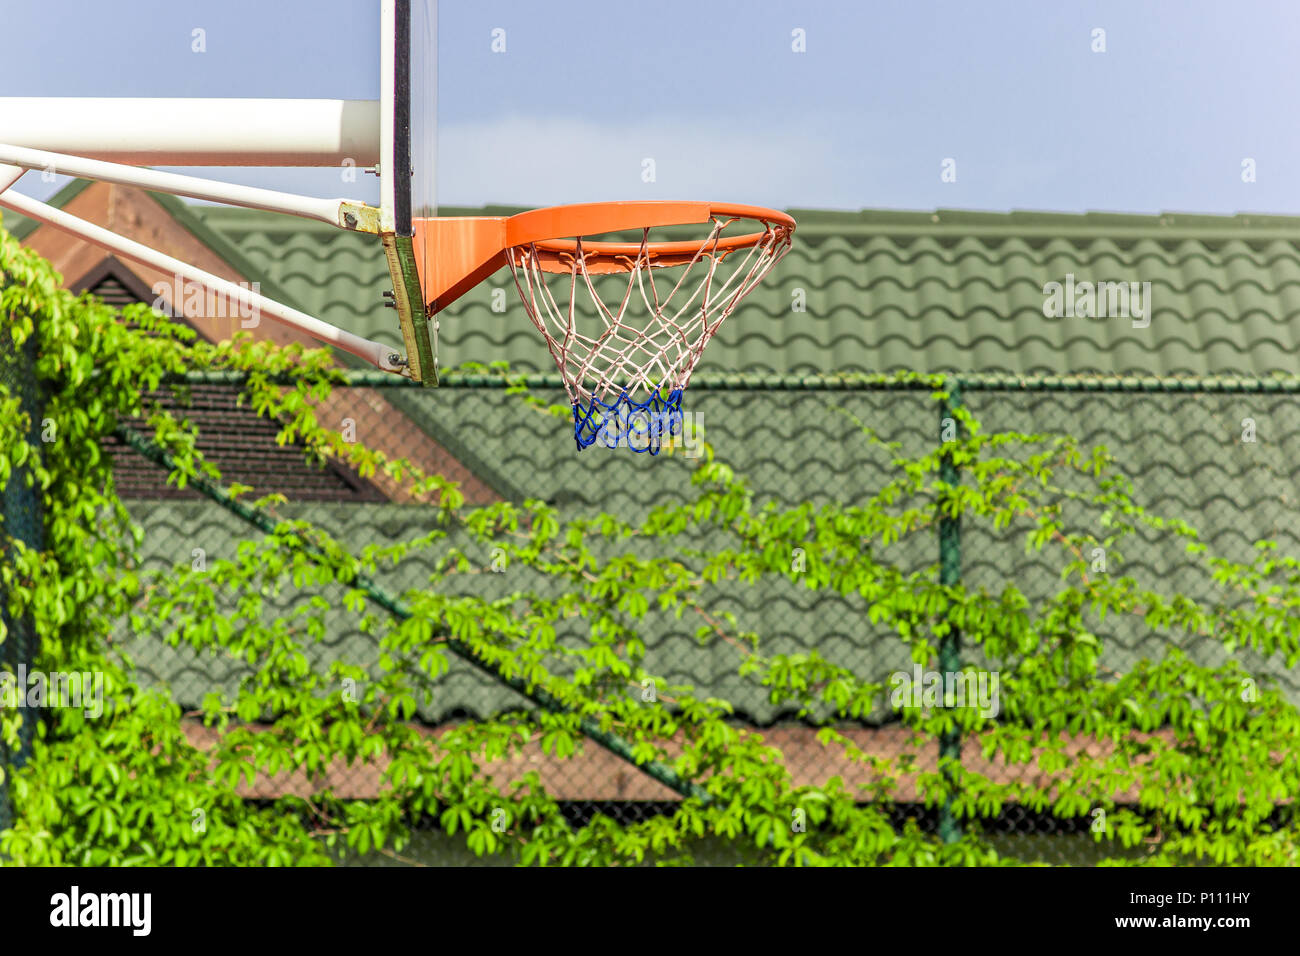 Basketball Hoop Perth Basketball Court In Perspective View Stock Photos Basketball